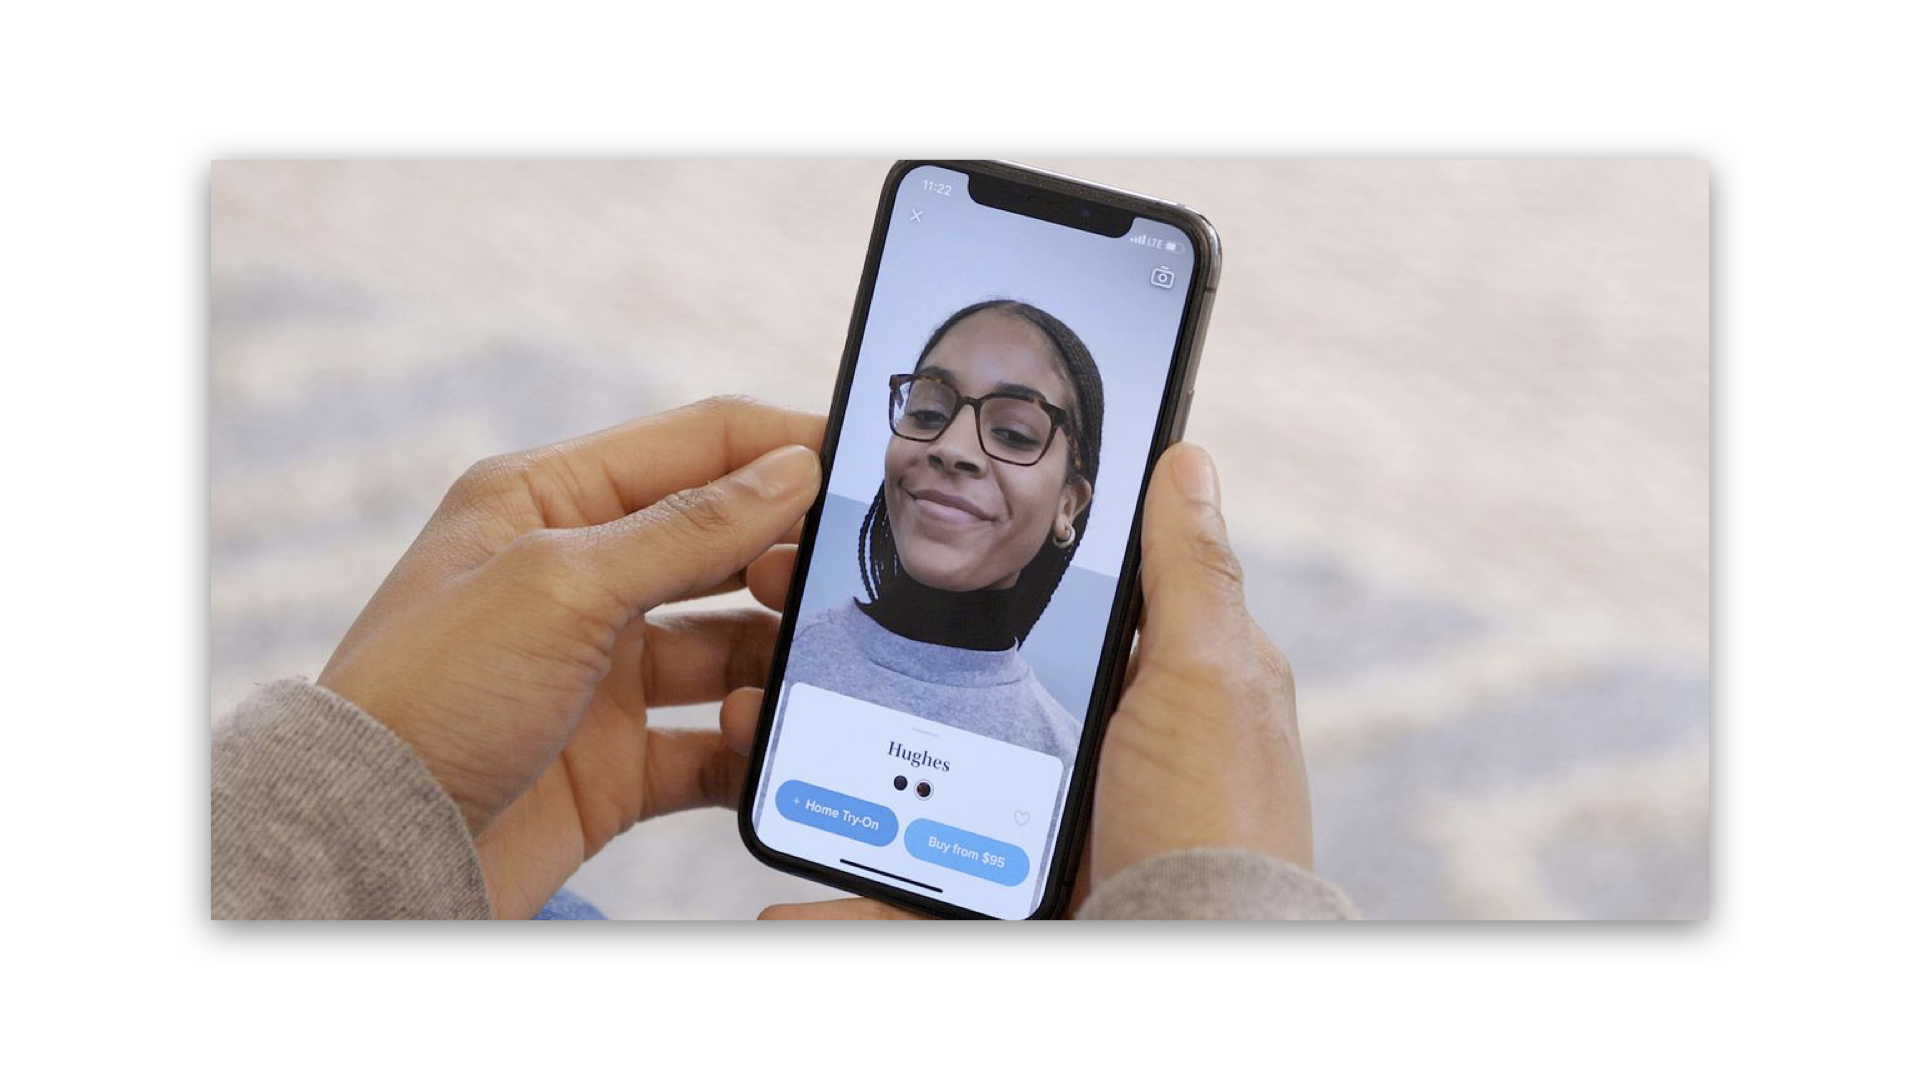 Warby Parker's apps allow users to virtually try on a pair of glasses and renew a prescription